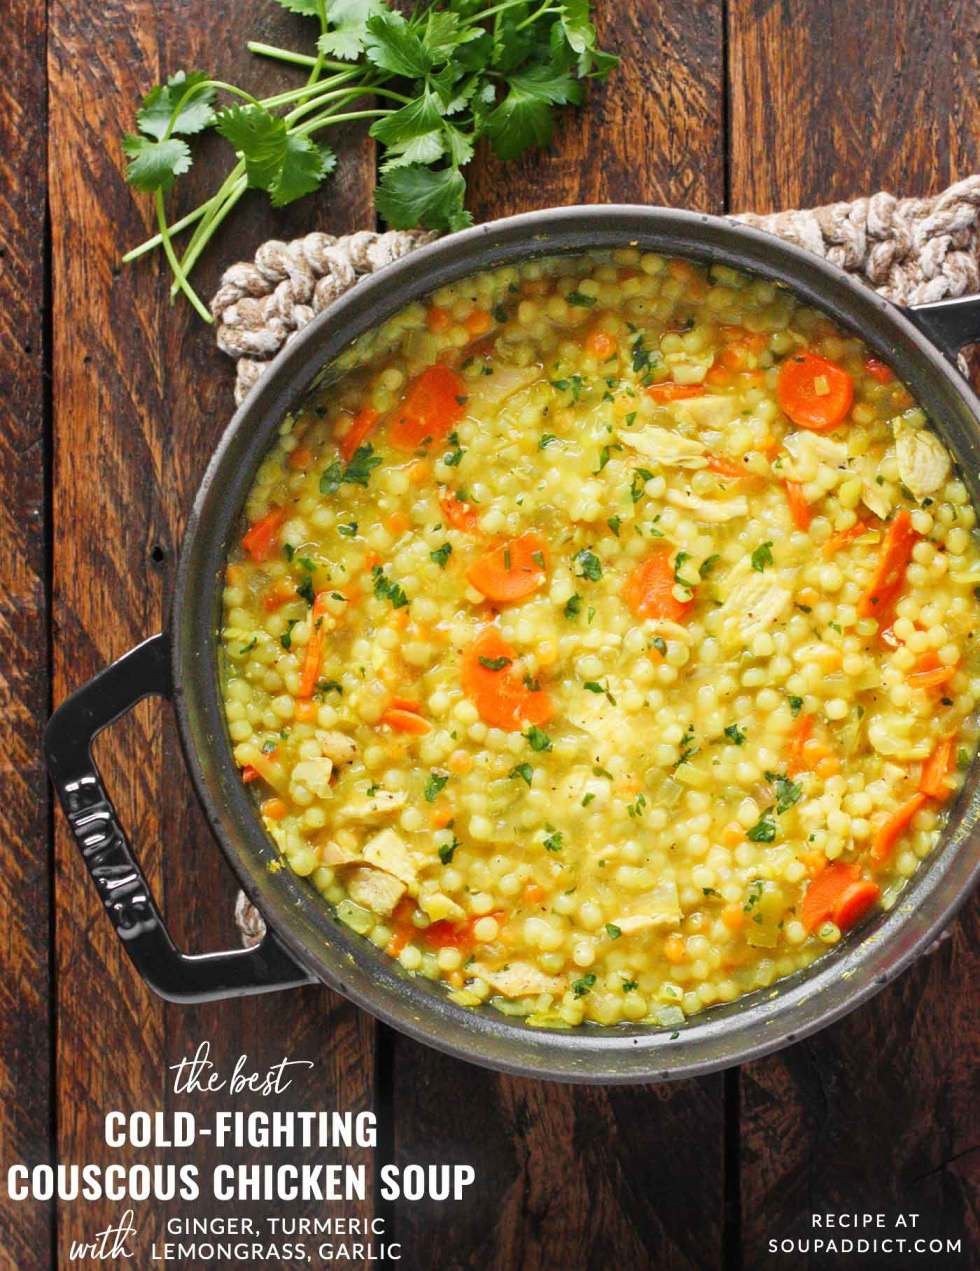 Cold-Fighting Couscous Chicken Soup - Recipe at SoupAddict.com